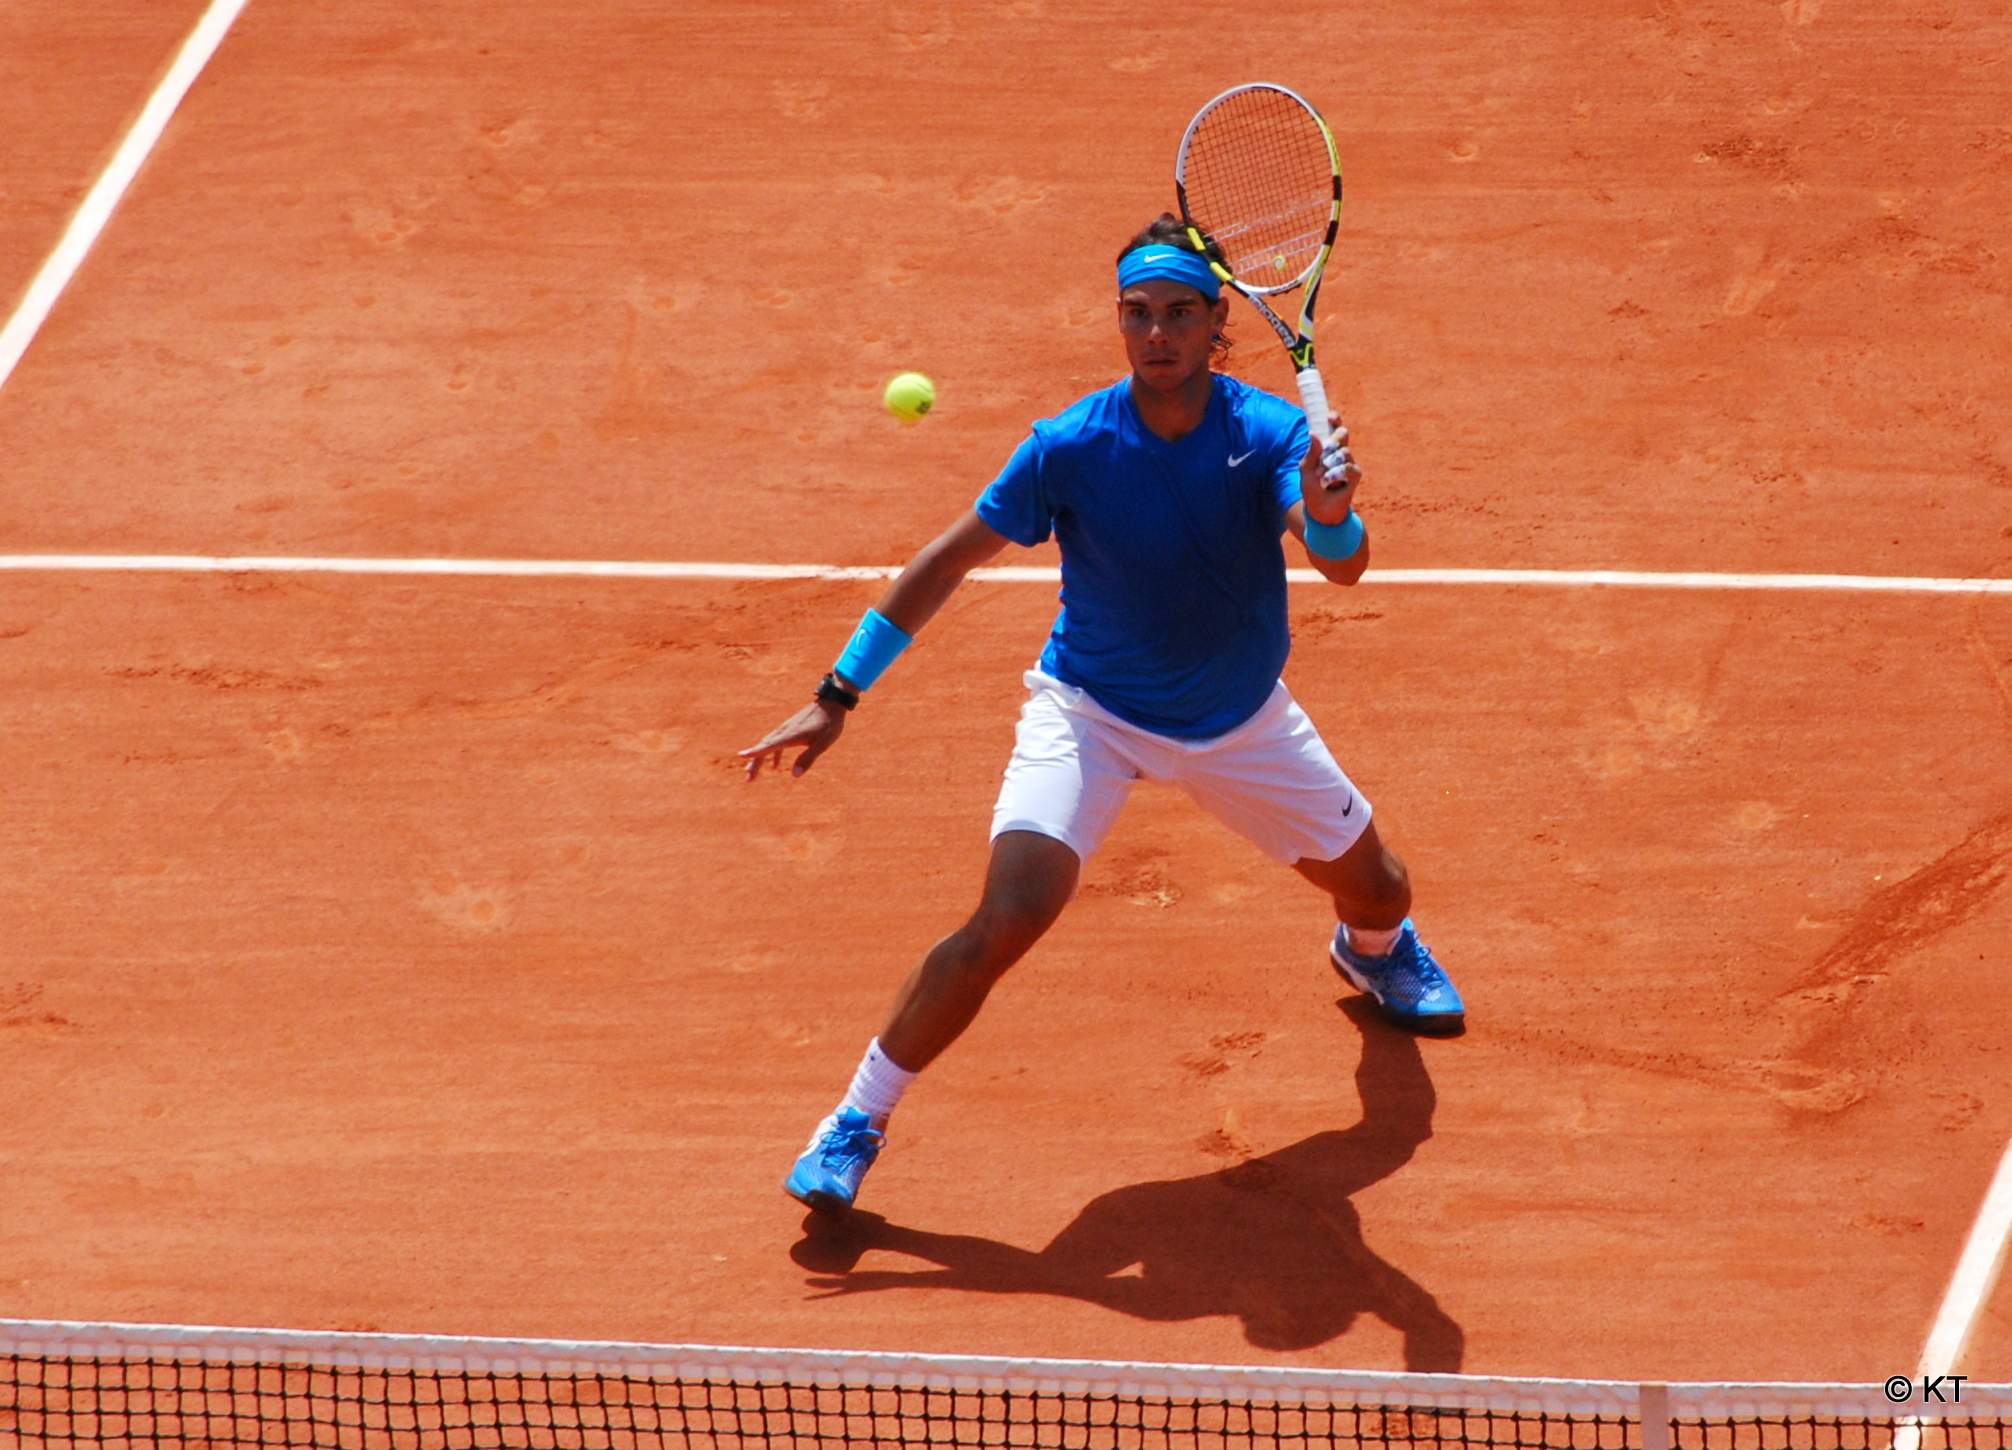 World number one Rafael Nadal returned to the courts of Roland Garros Thursday after rain shortened his quarterfinals encounter with the 11th-seeded Diego Schwartzman of Argentina Wednesday